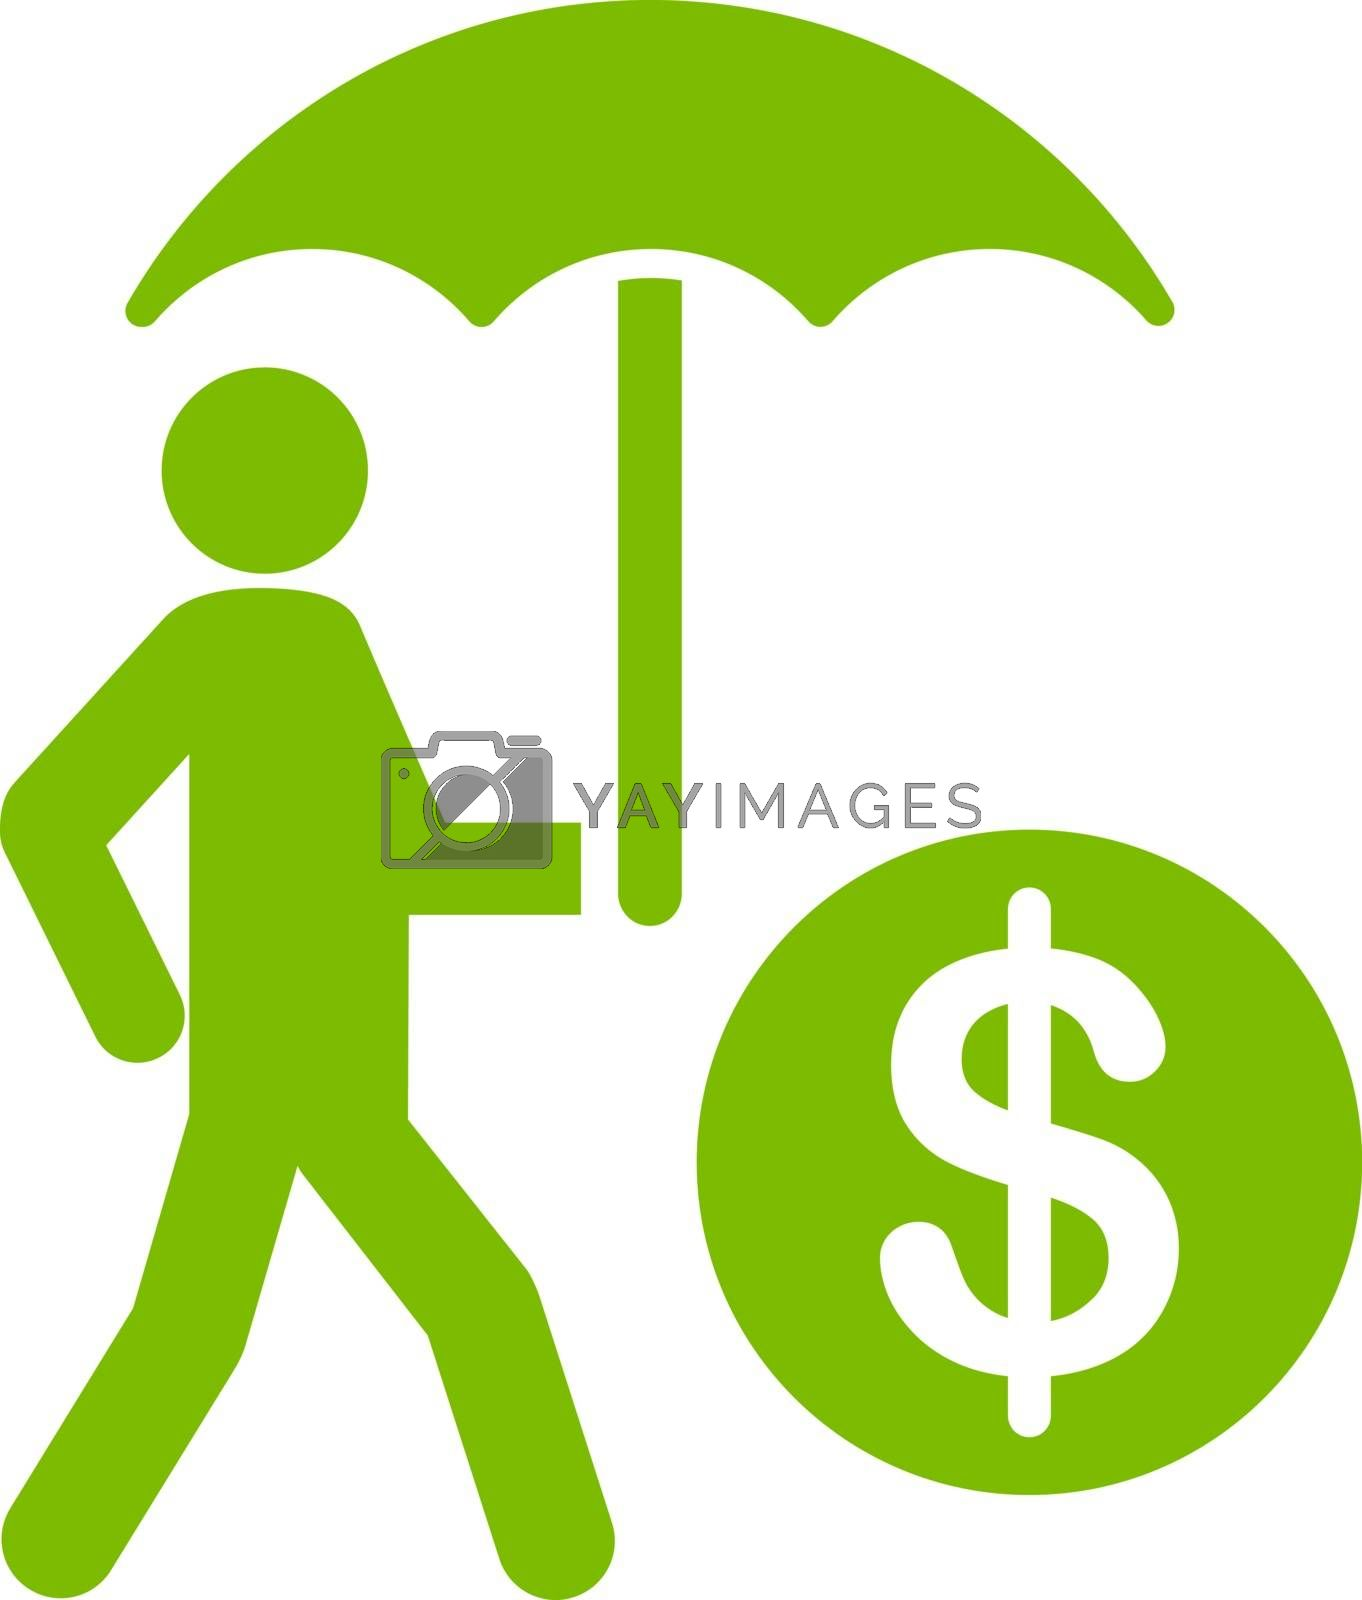 Financial insurance icon from Business Bicolor Set. Vector style is flat symbols, eco green color, rounded angles, white background.